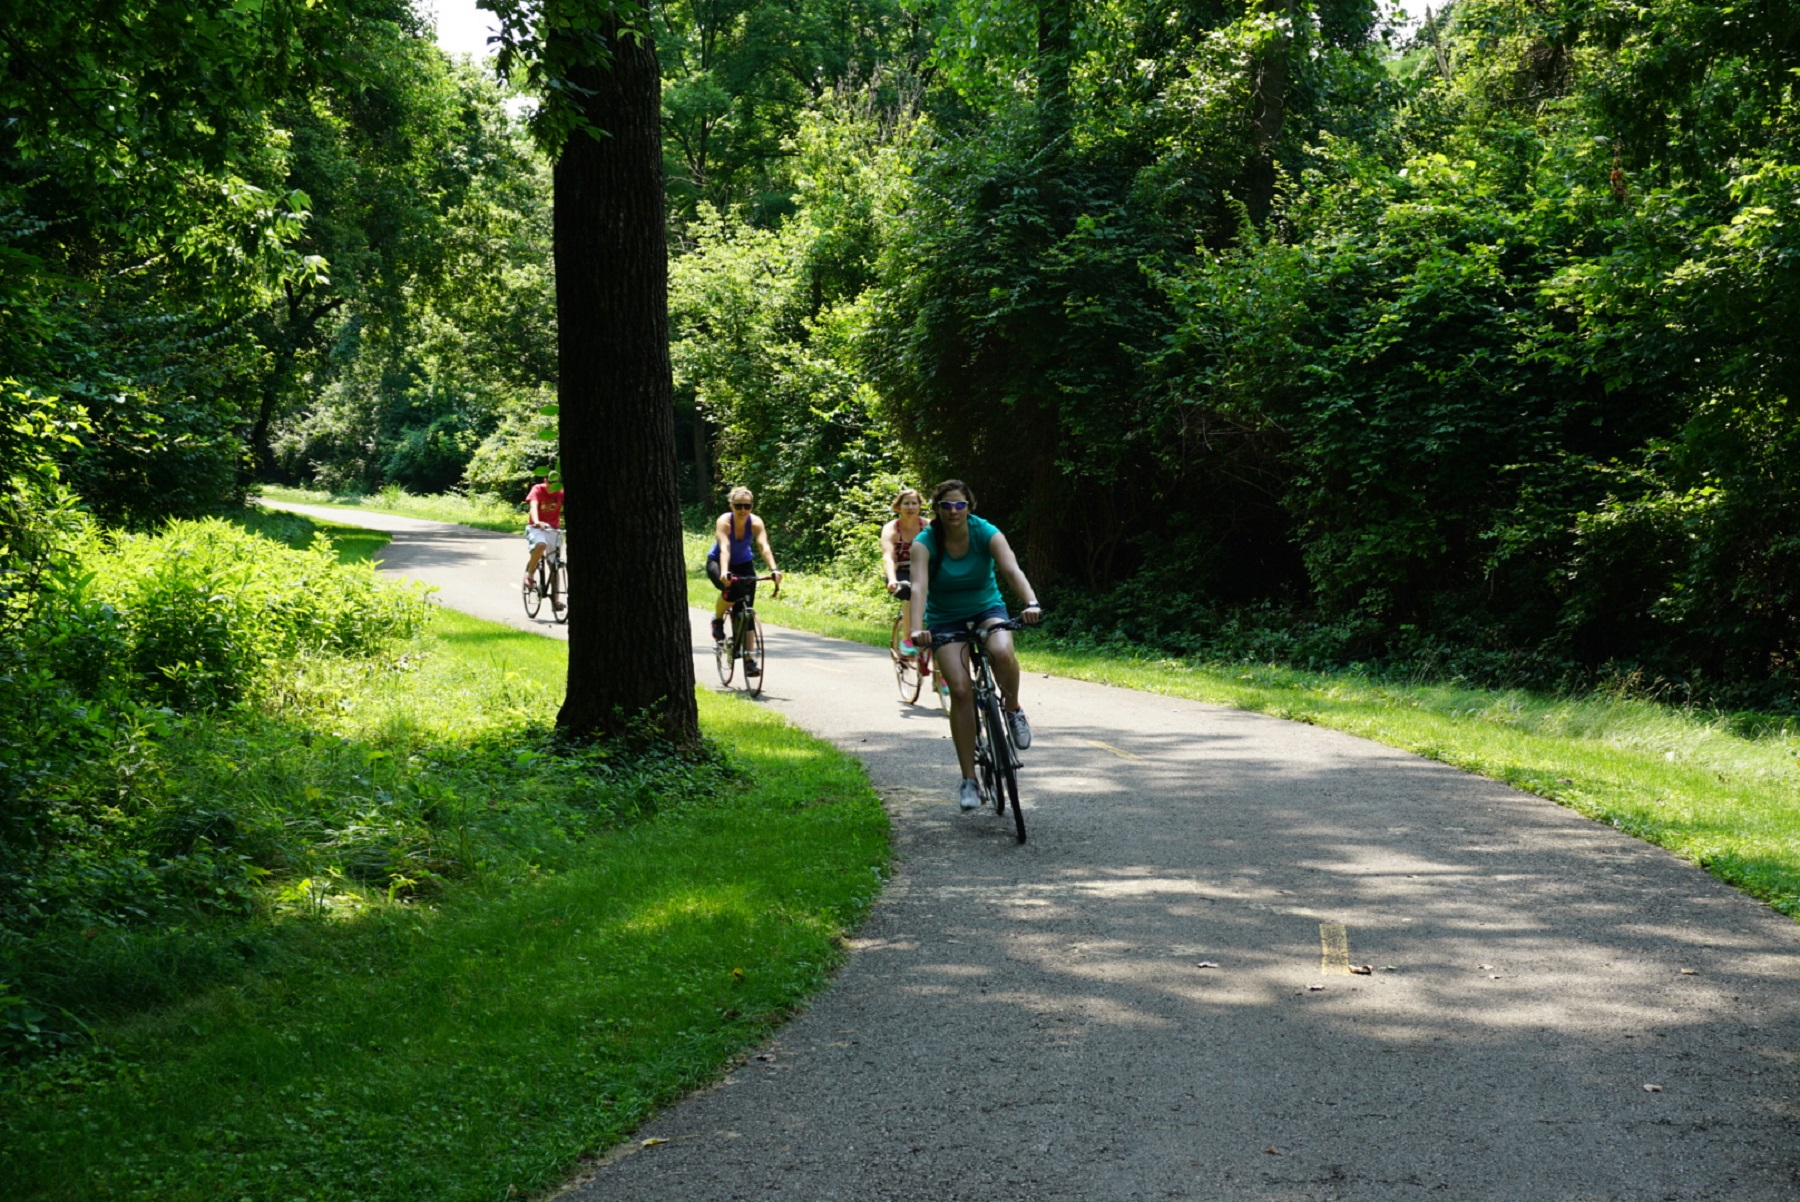 Cyclists ride a greenways trail.Photo source: planning-next.com